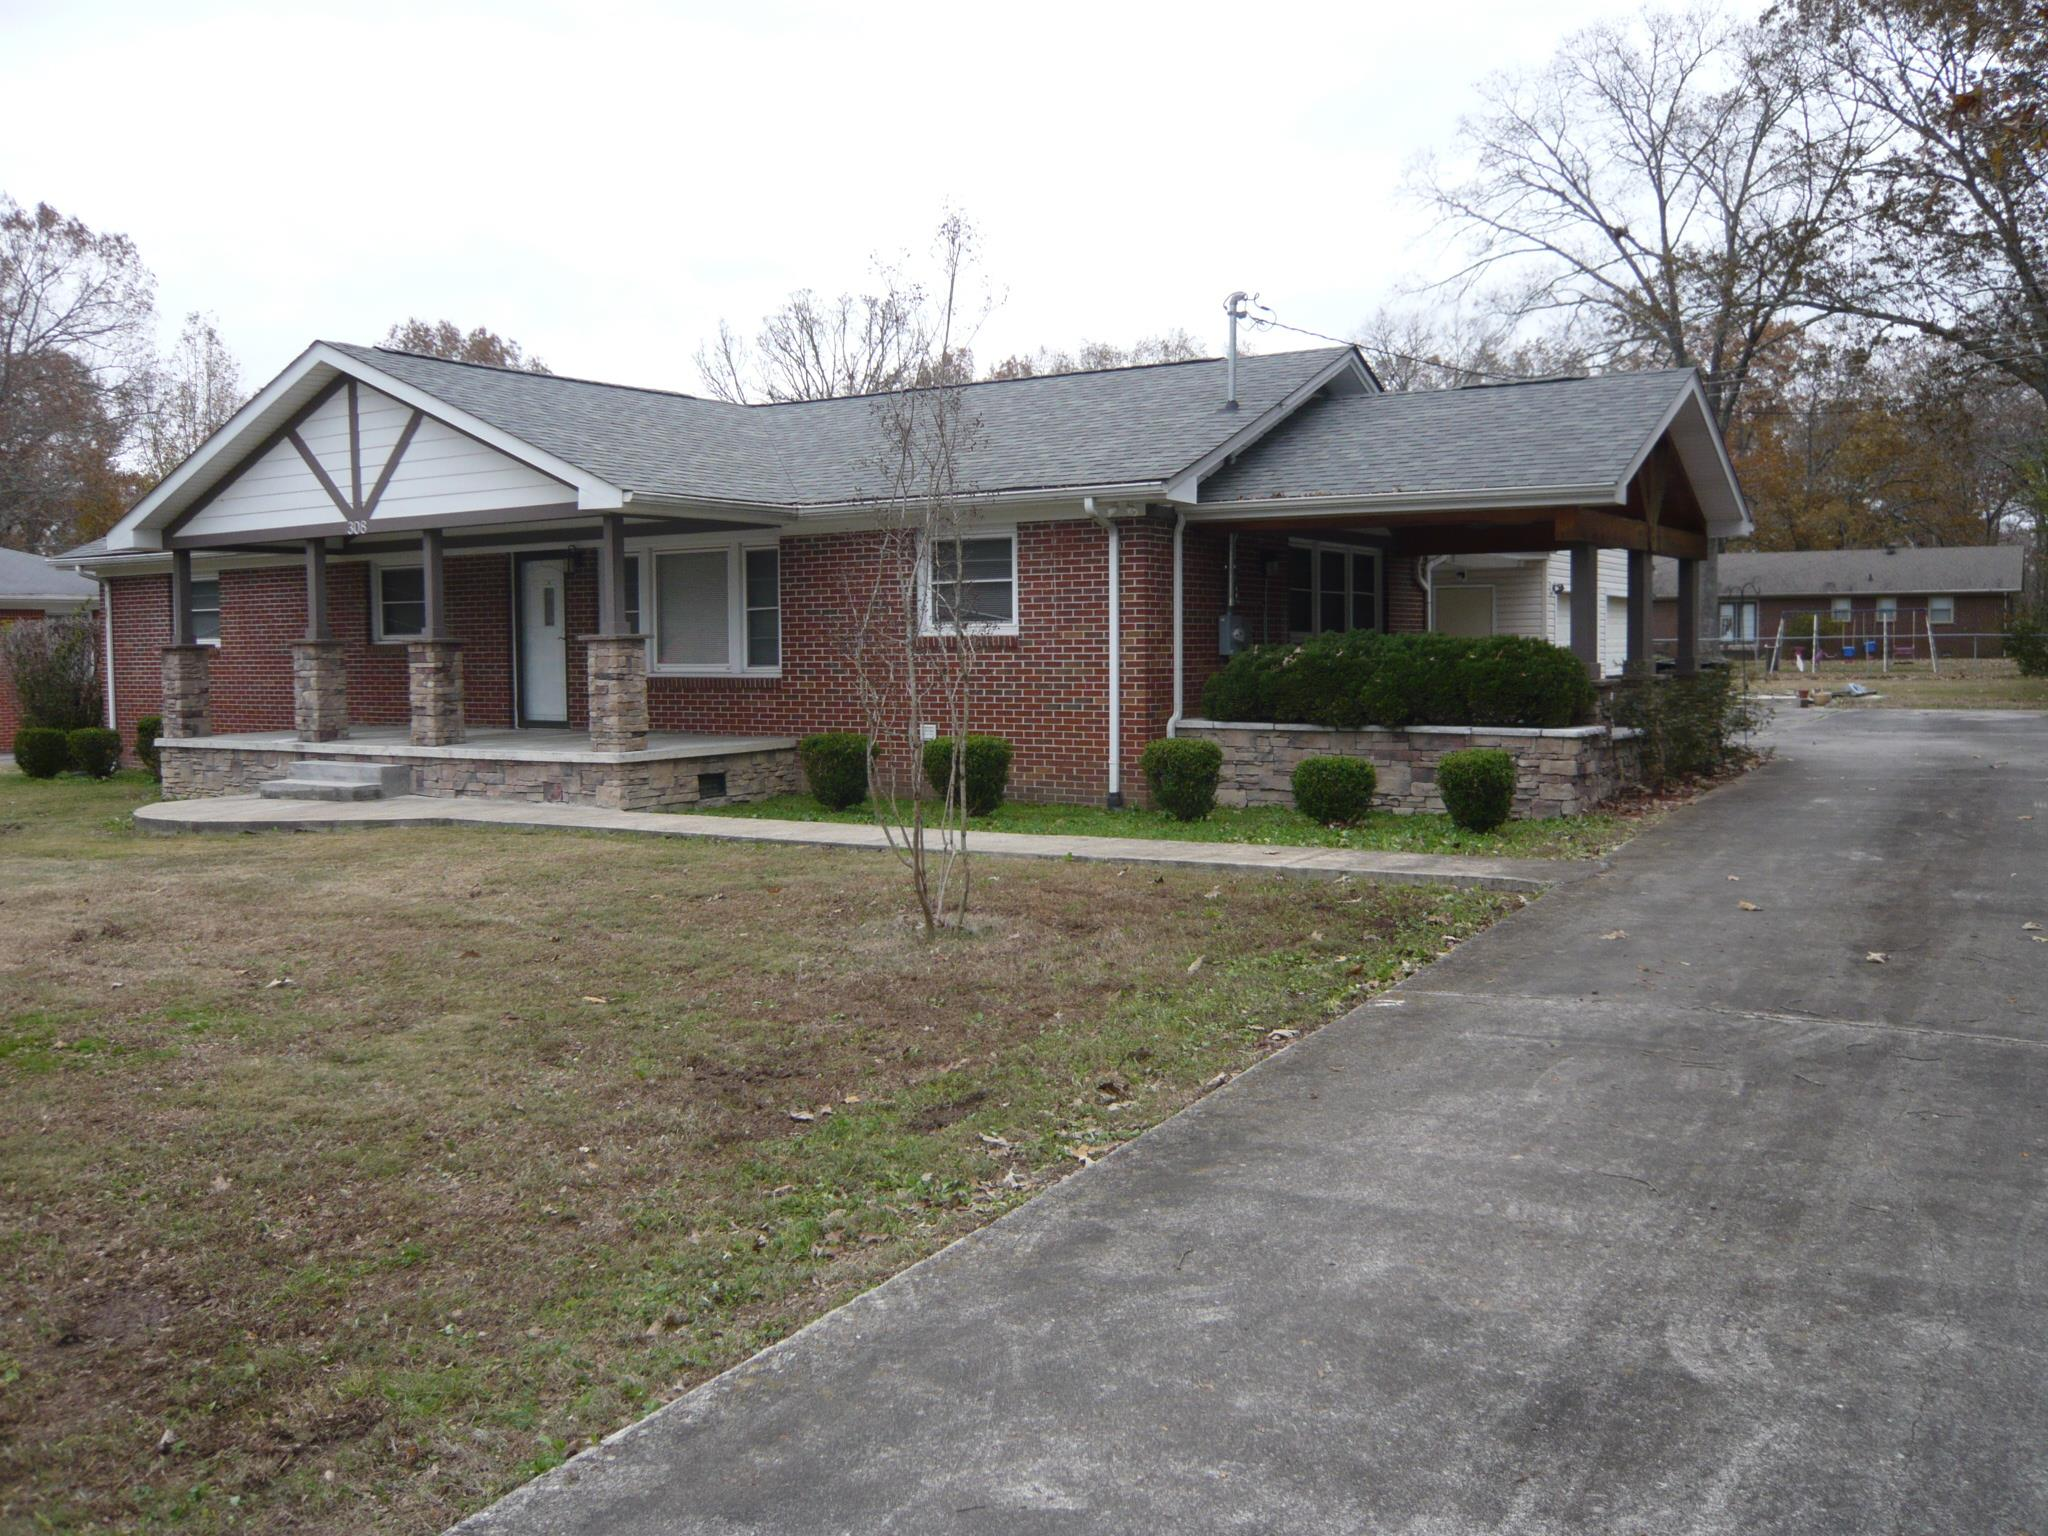 308 Crestwood Dr, Tullahoma, Tennessee